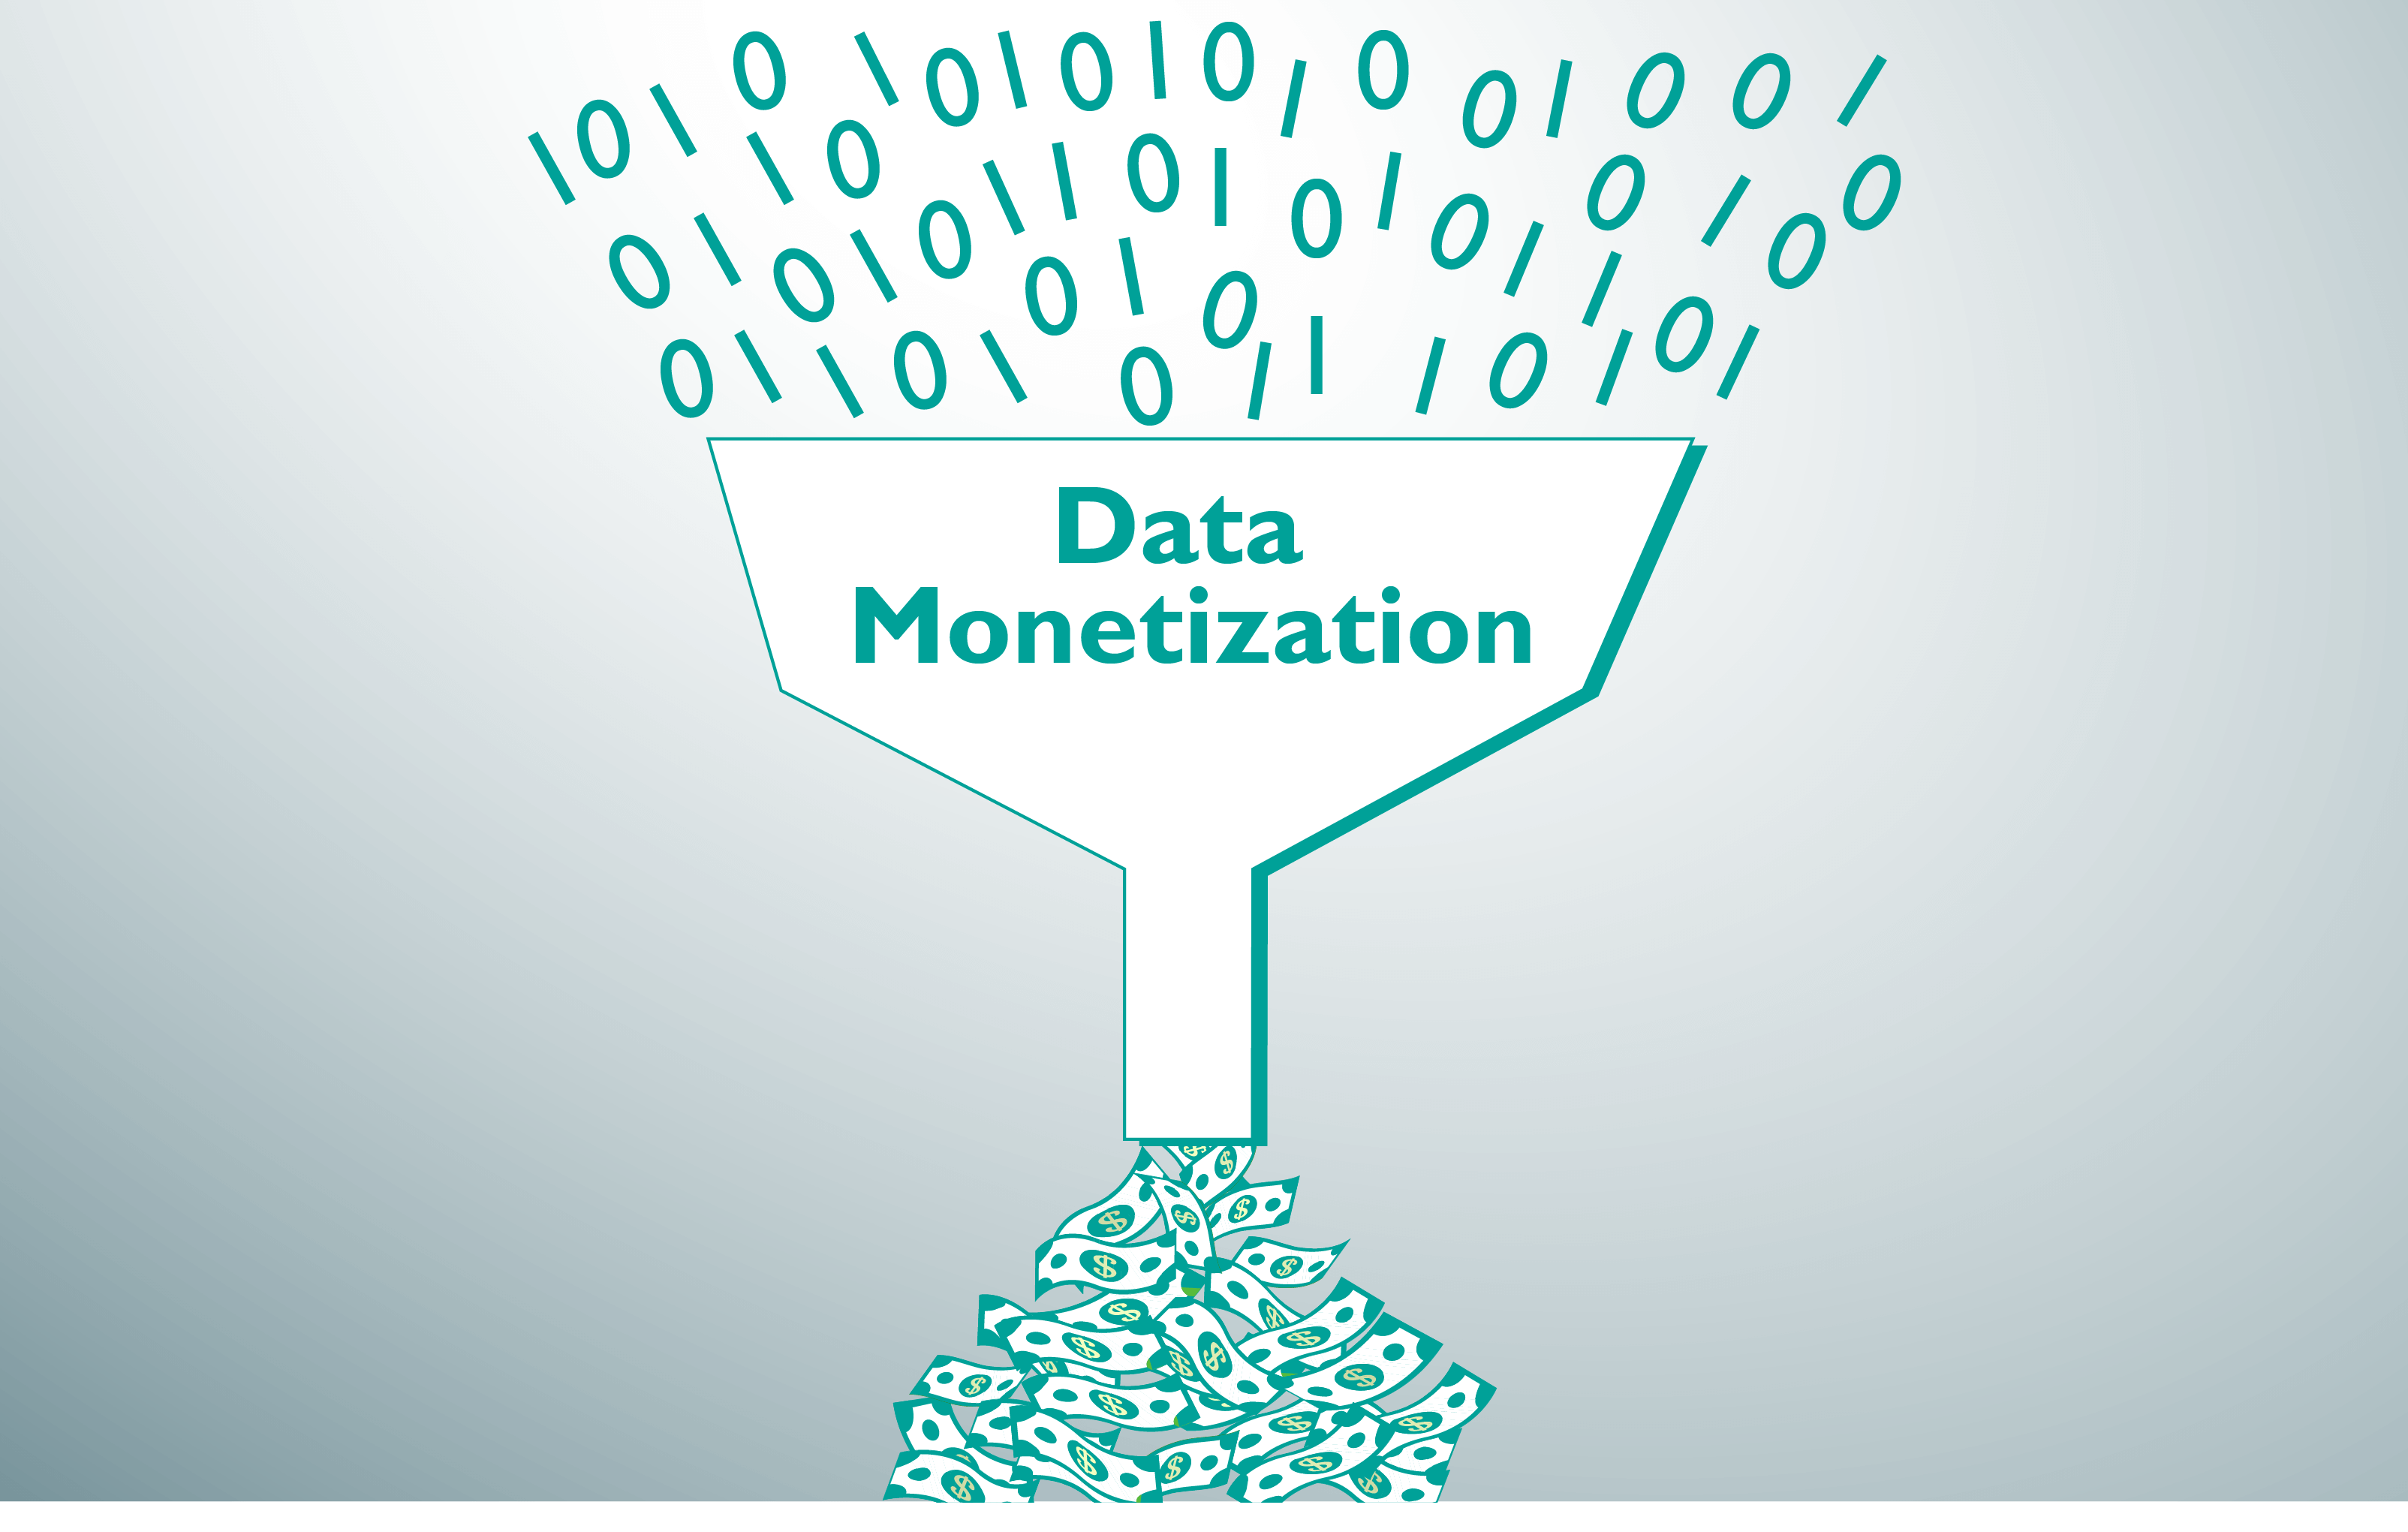 RealtimeCampaign.com Adds An Interesting Perspective on Data Monetization Strategies 3